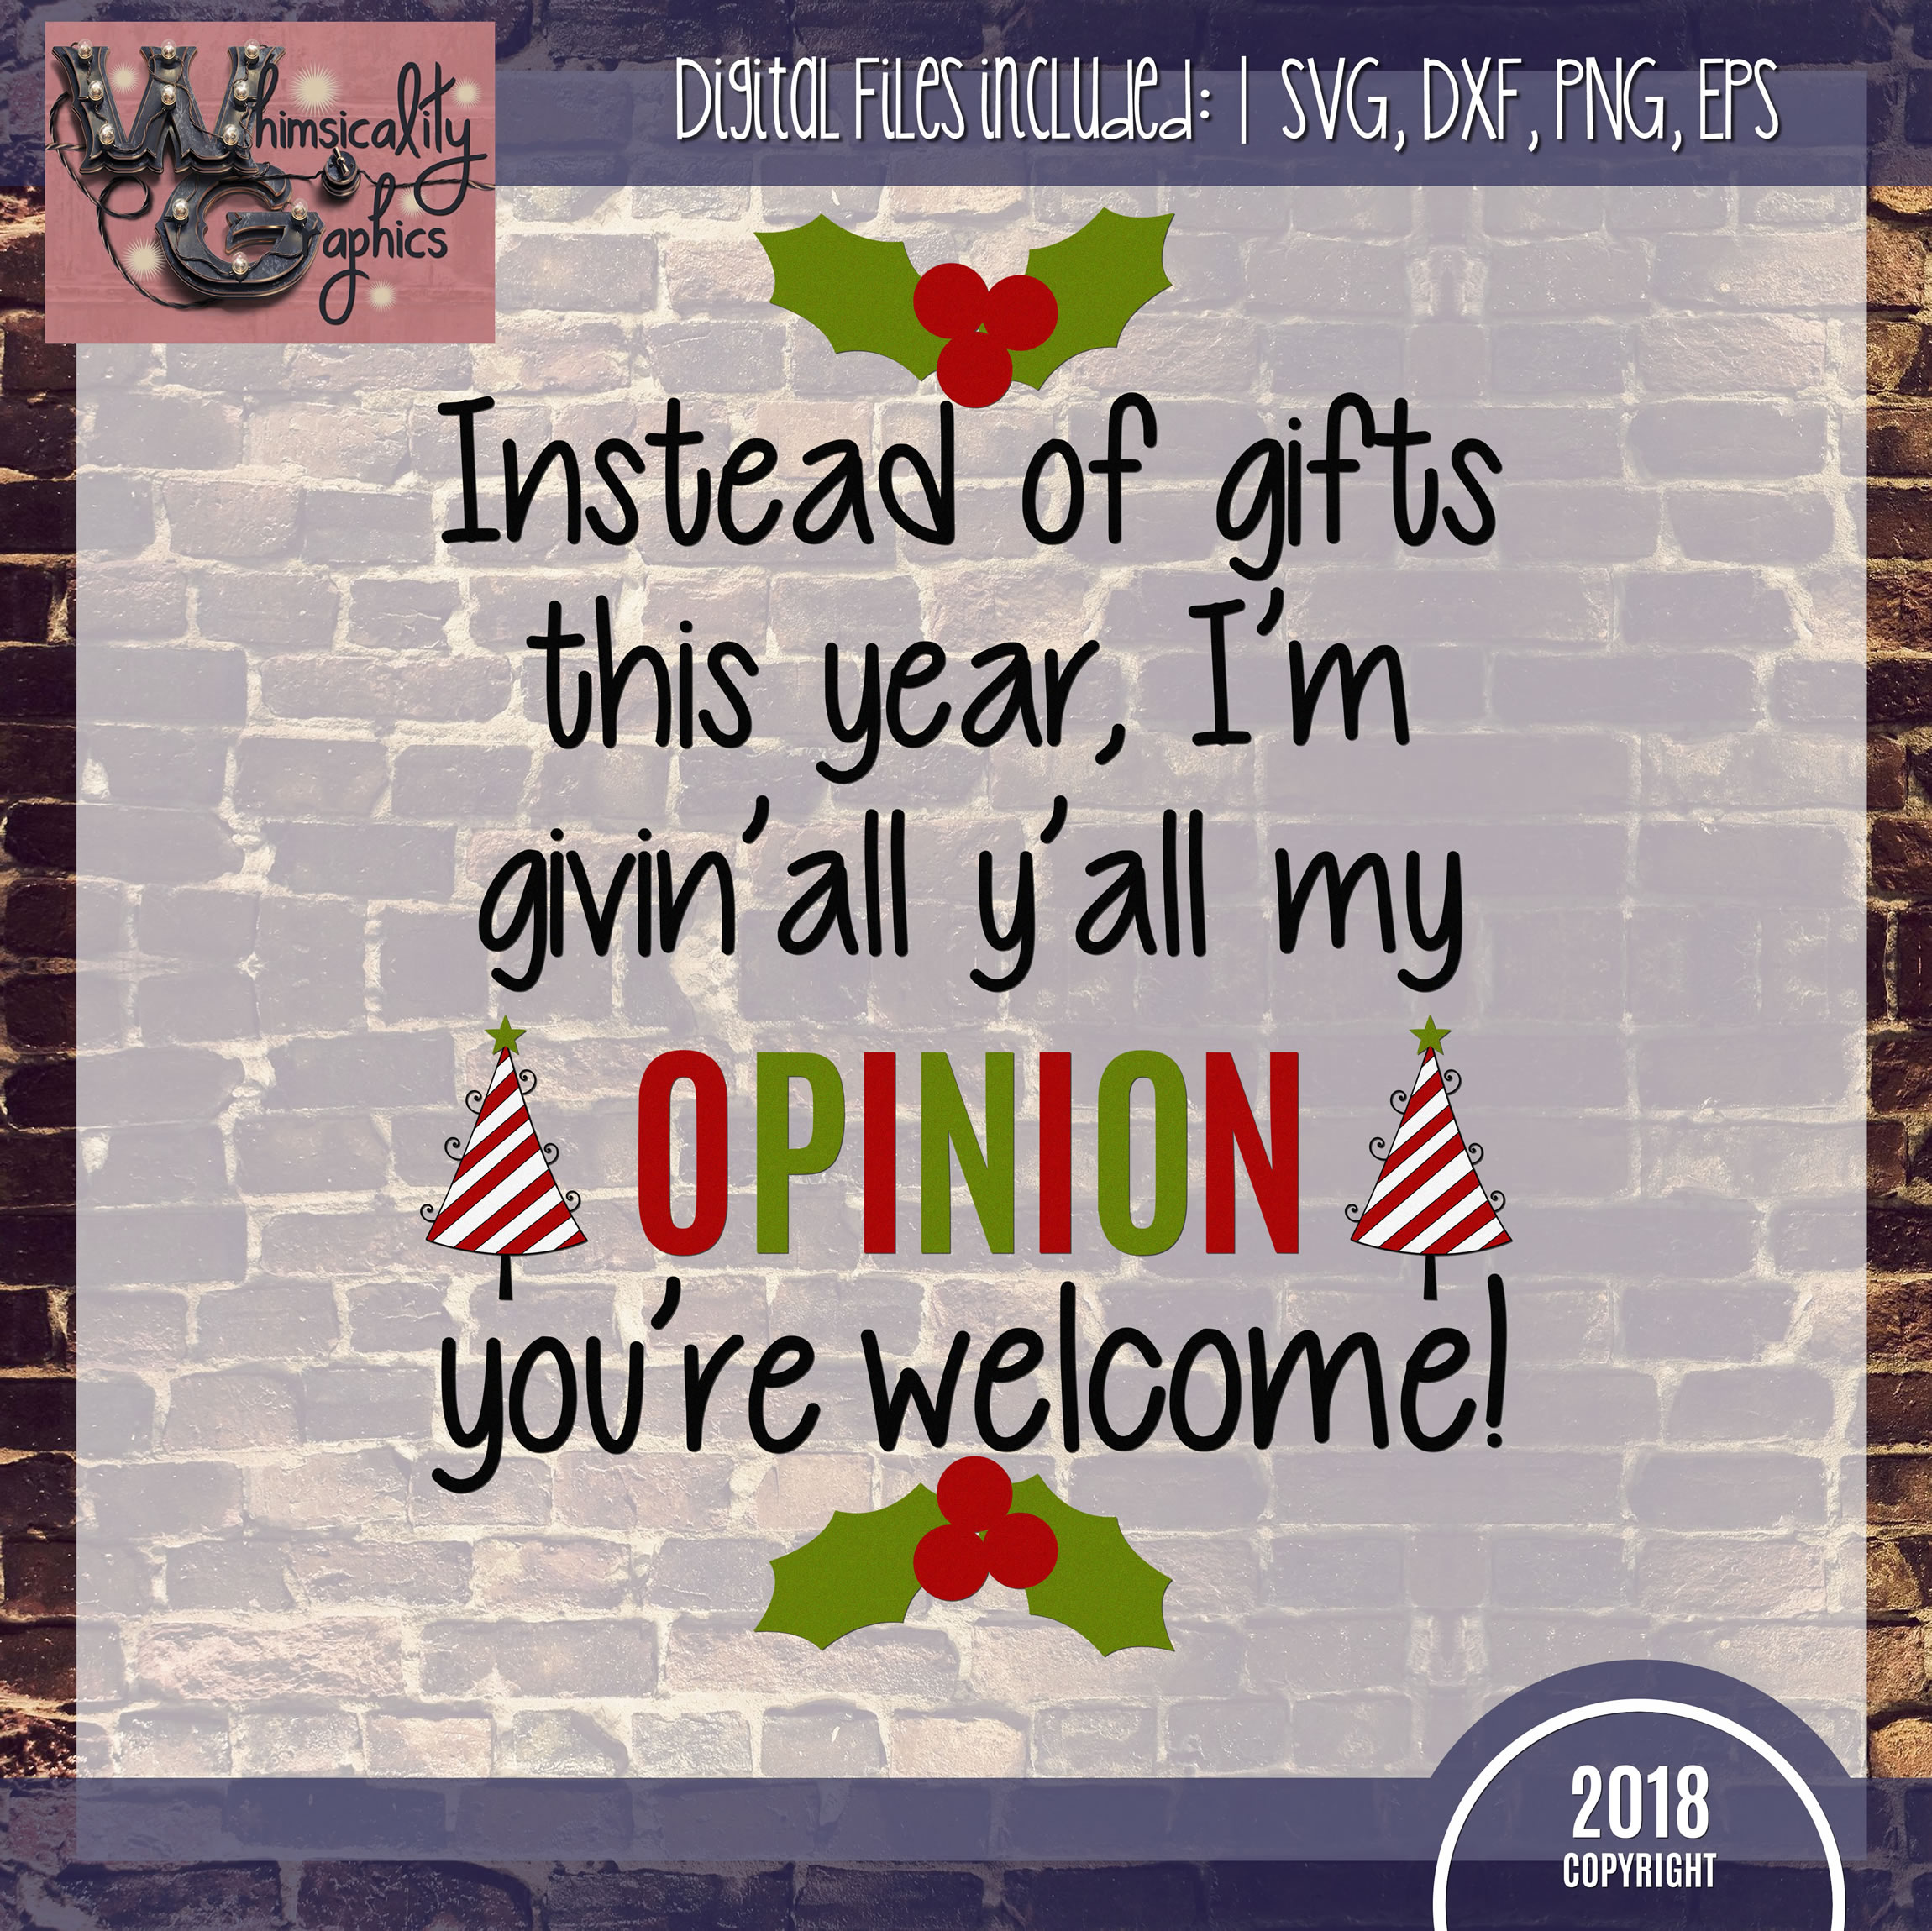 Givin' All Y'all My Opinion Christmas SVG DXF PNG JPG Comm example image 2